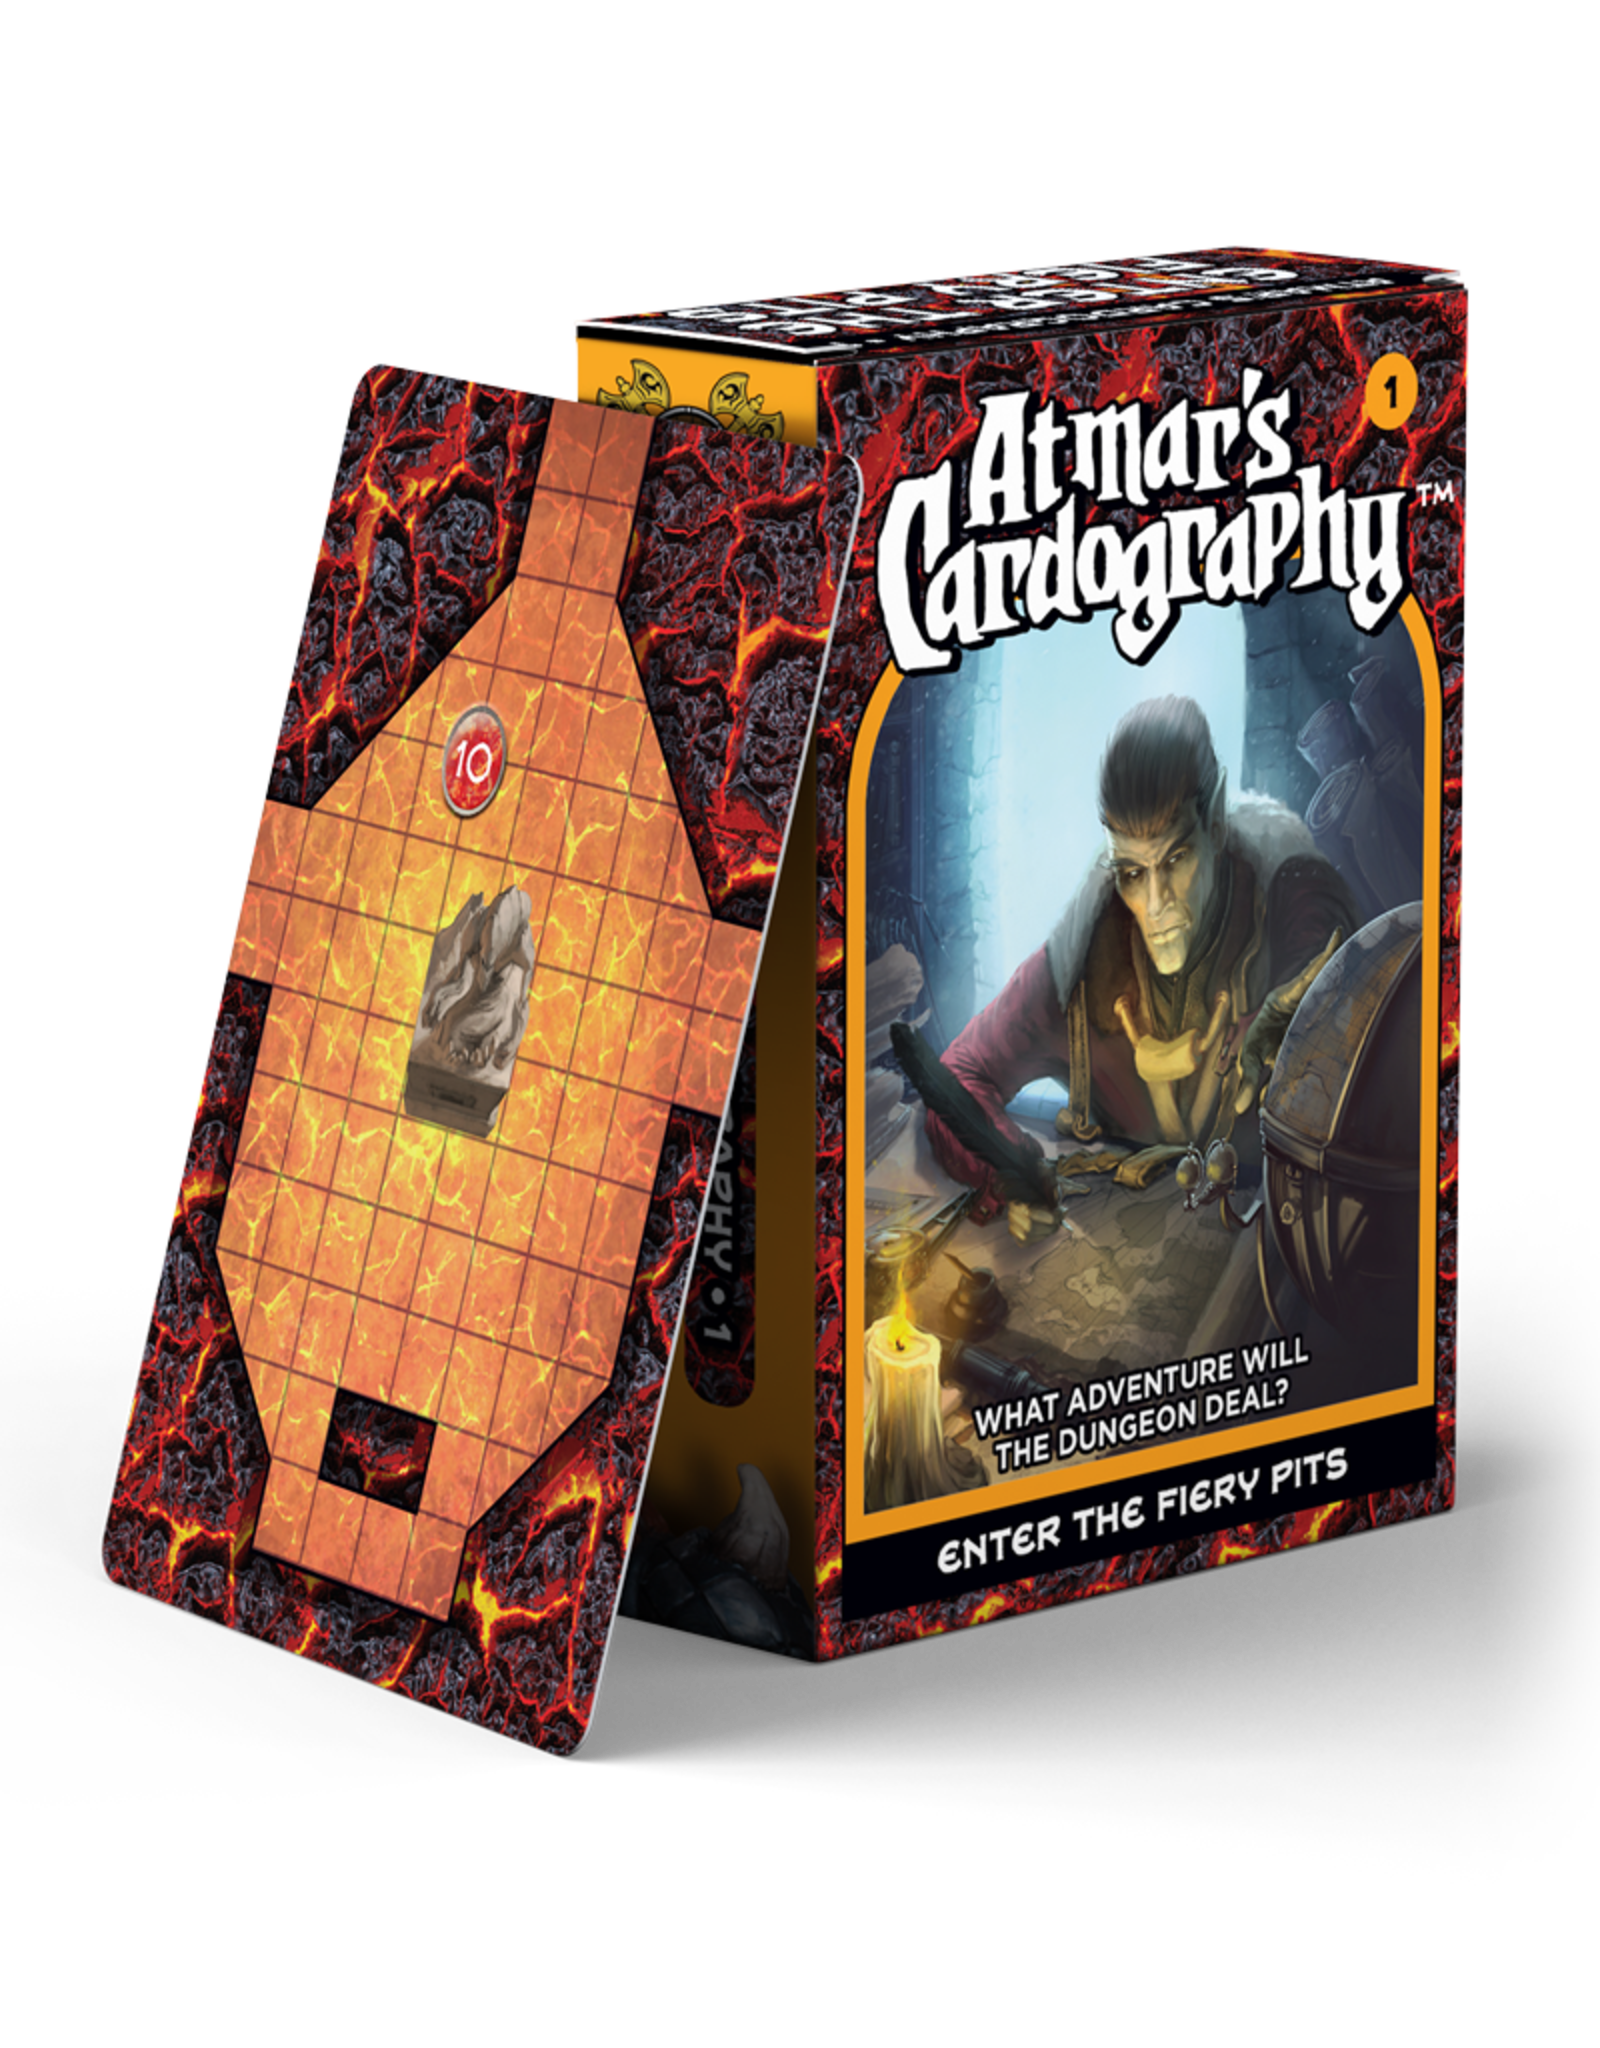 Atmar S Cardography 1 Fiery Pit Labyrinth Games Puzzles With these norse foundry coupons you can get an 16% average savings. labyrinth games puzzles